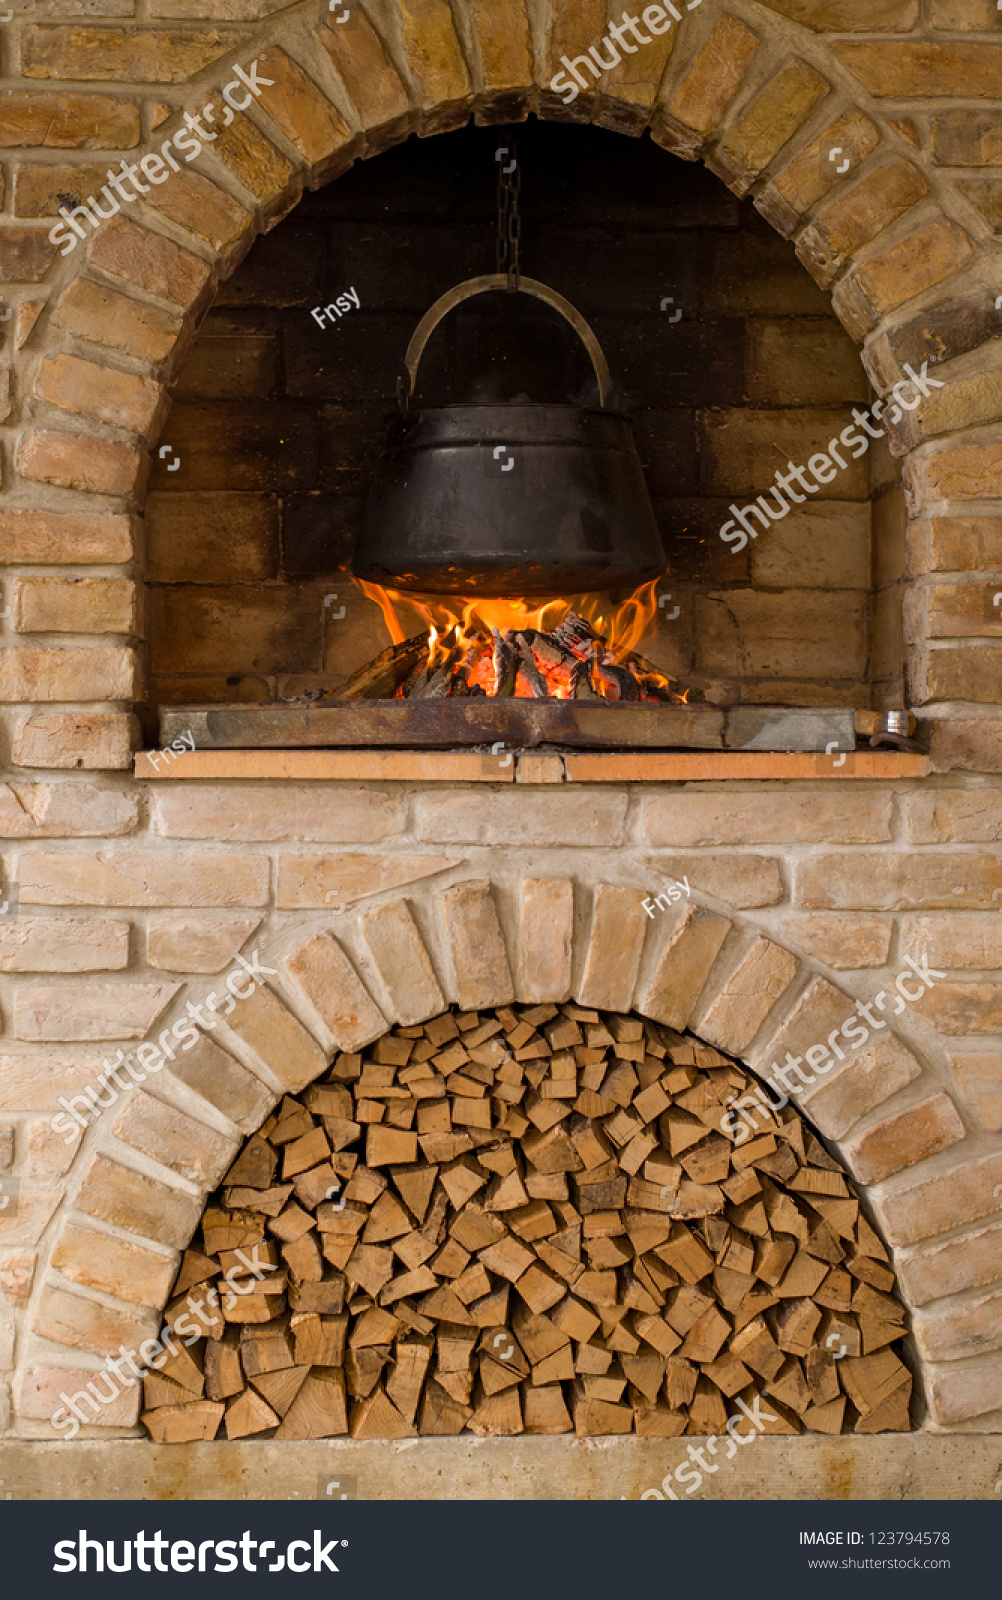 outdoor cooking barbecue fireplace kettle boiling stock photo